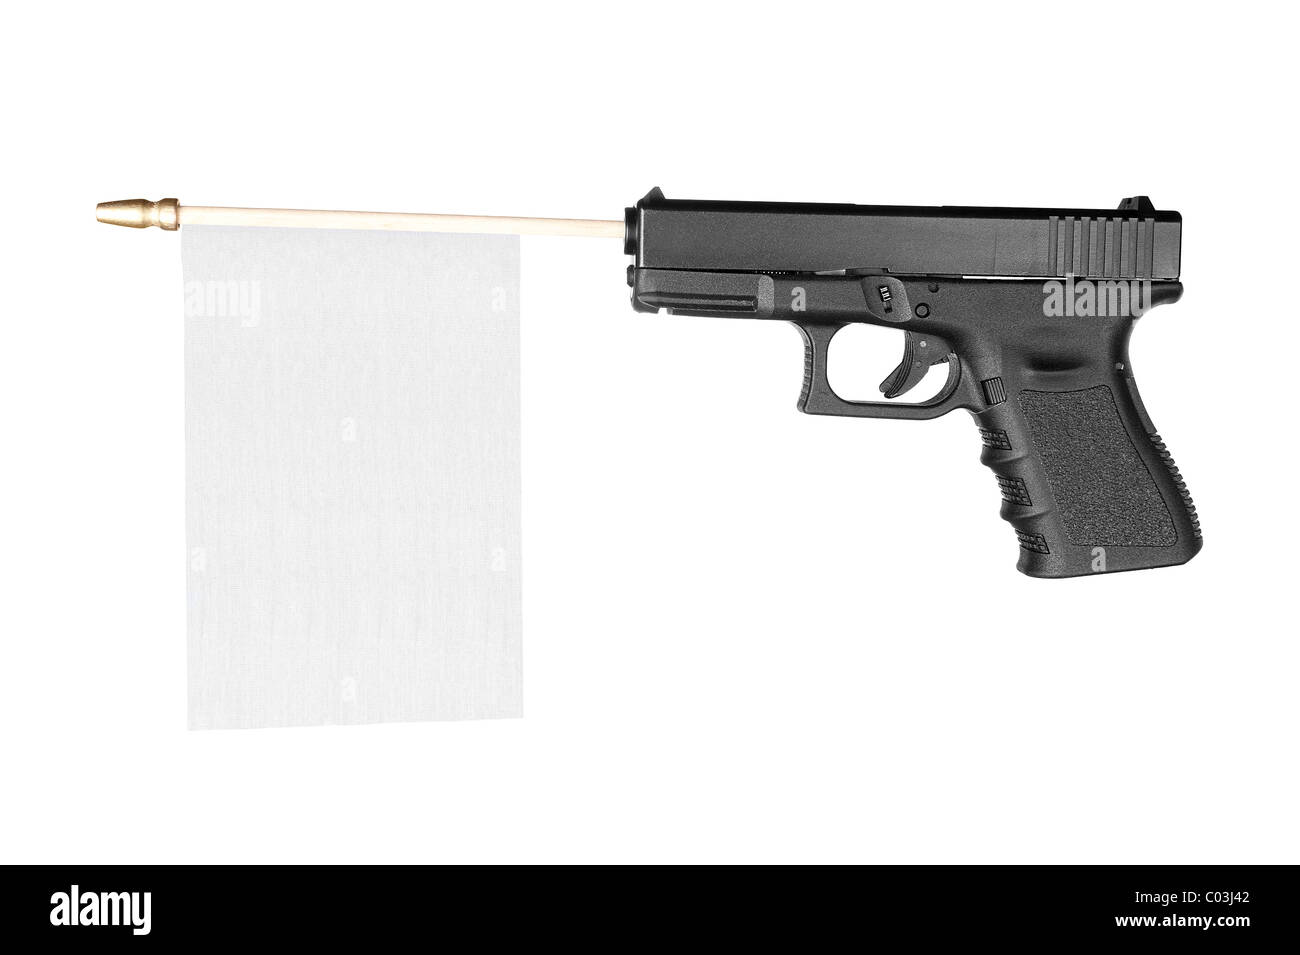 A handgun with a white flag sticking out for use to place copy. - Stock Image